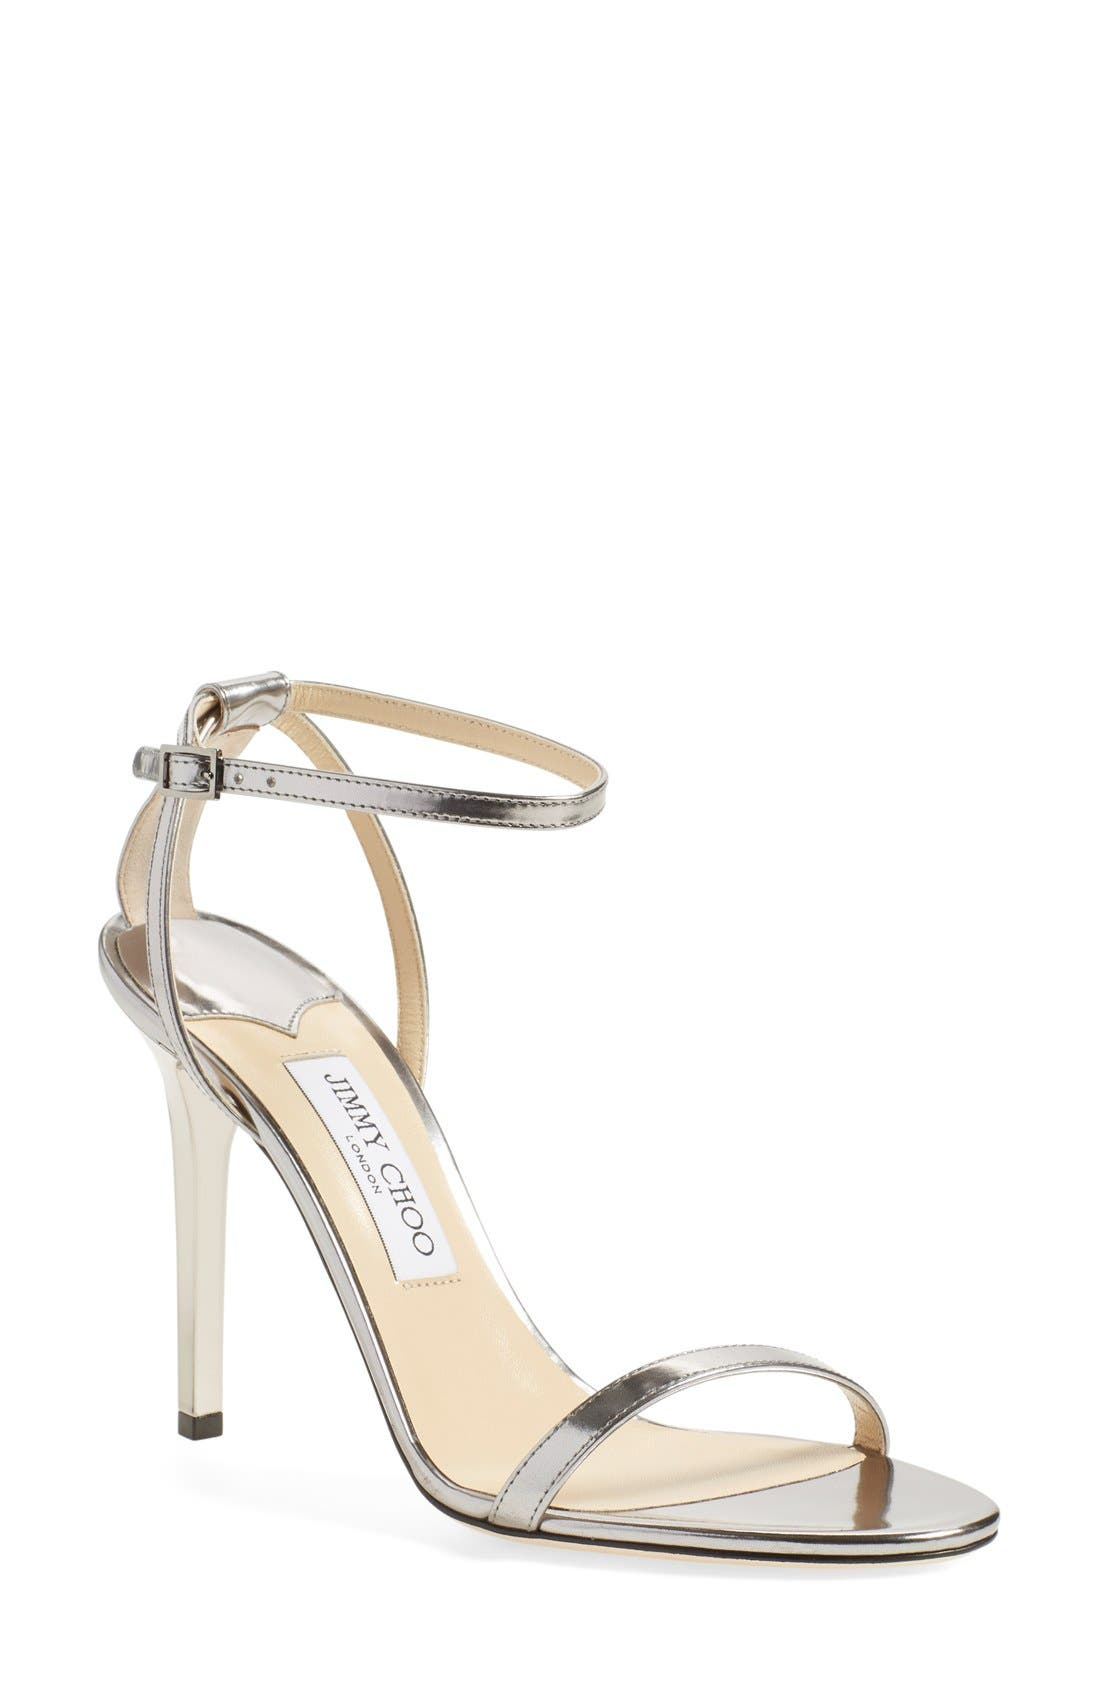 JIMMY CHOO,                             'Minny' Ankle Strap Sandal,                             Main thumbnail 1, color,                             040